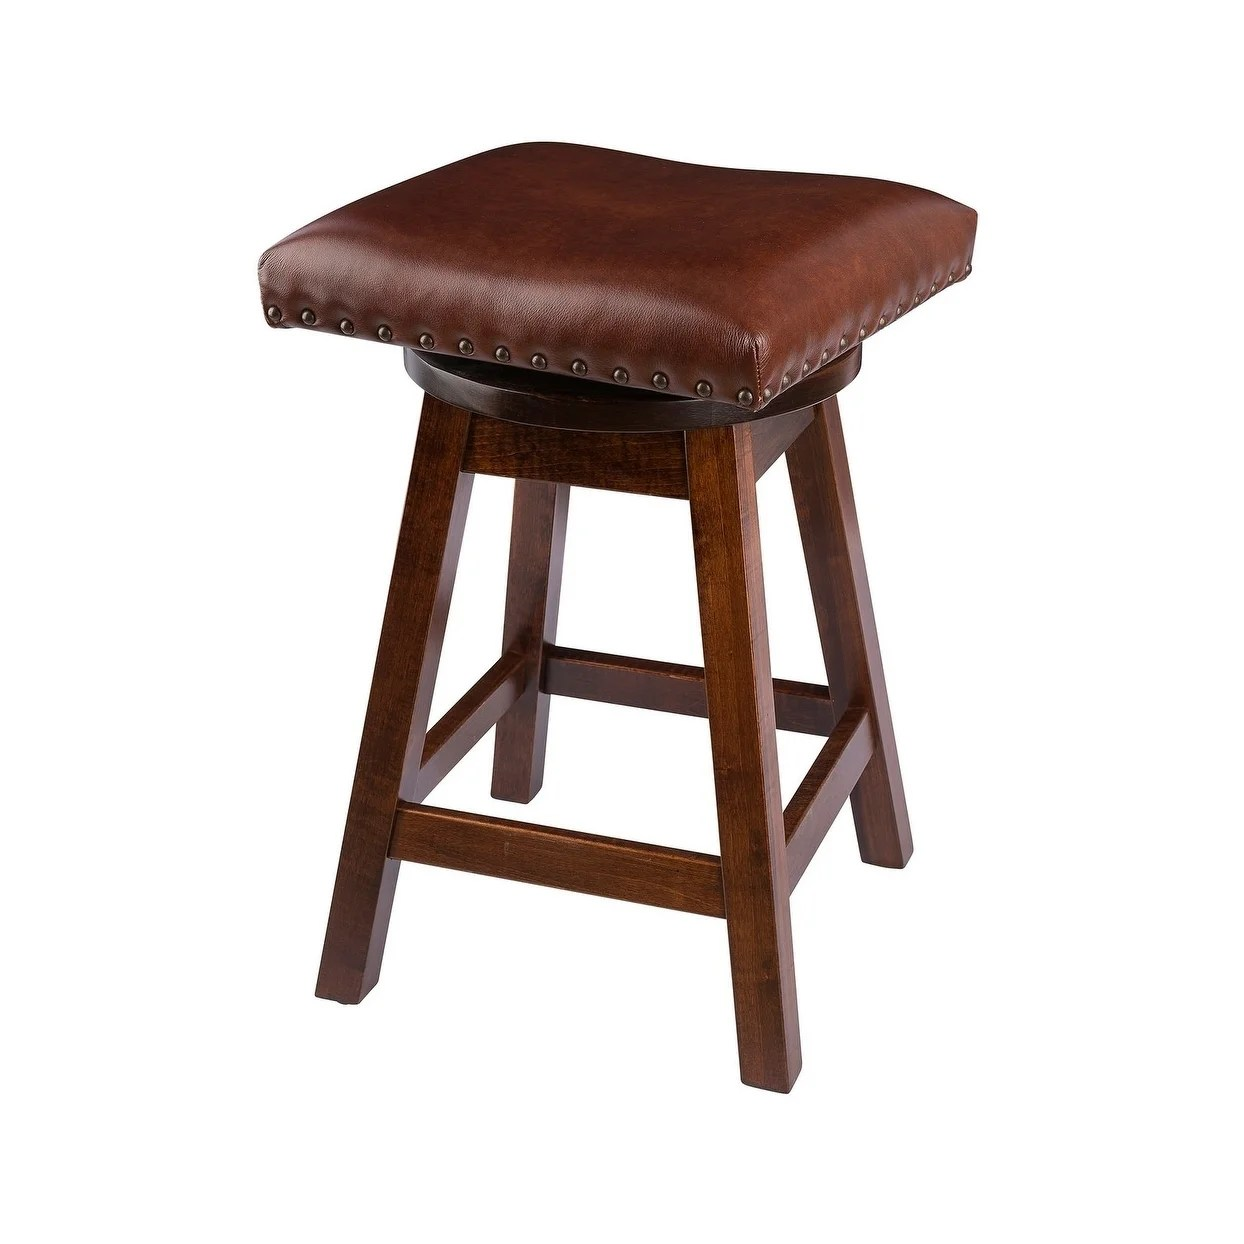 Swivel Urban Bar Stool In Maple Wood With Leather Seat Overstock 22670891